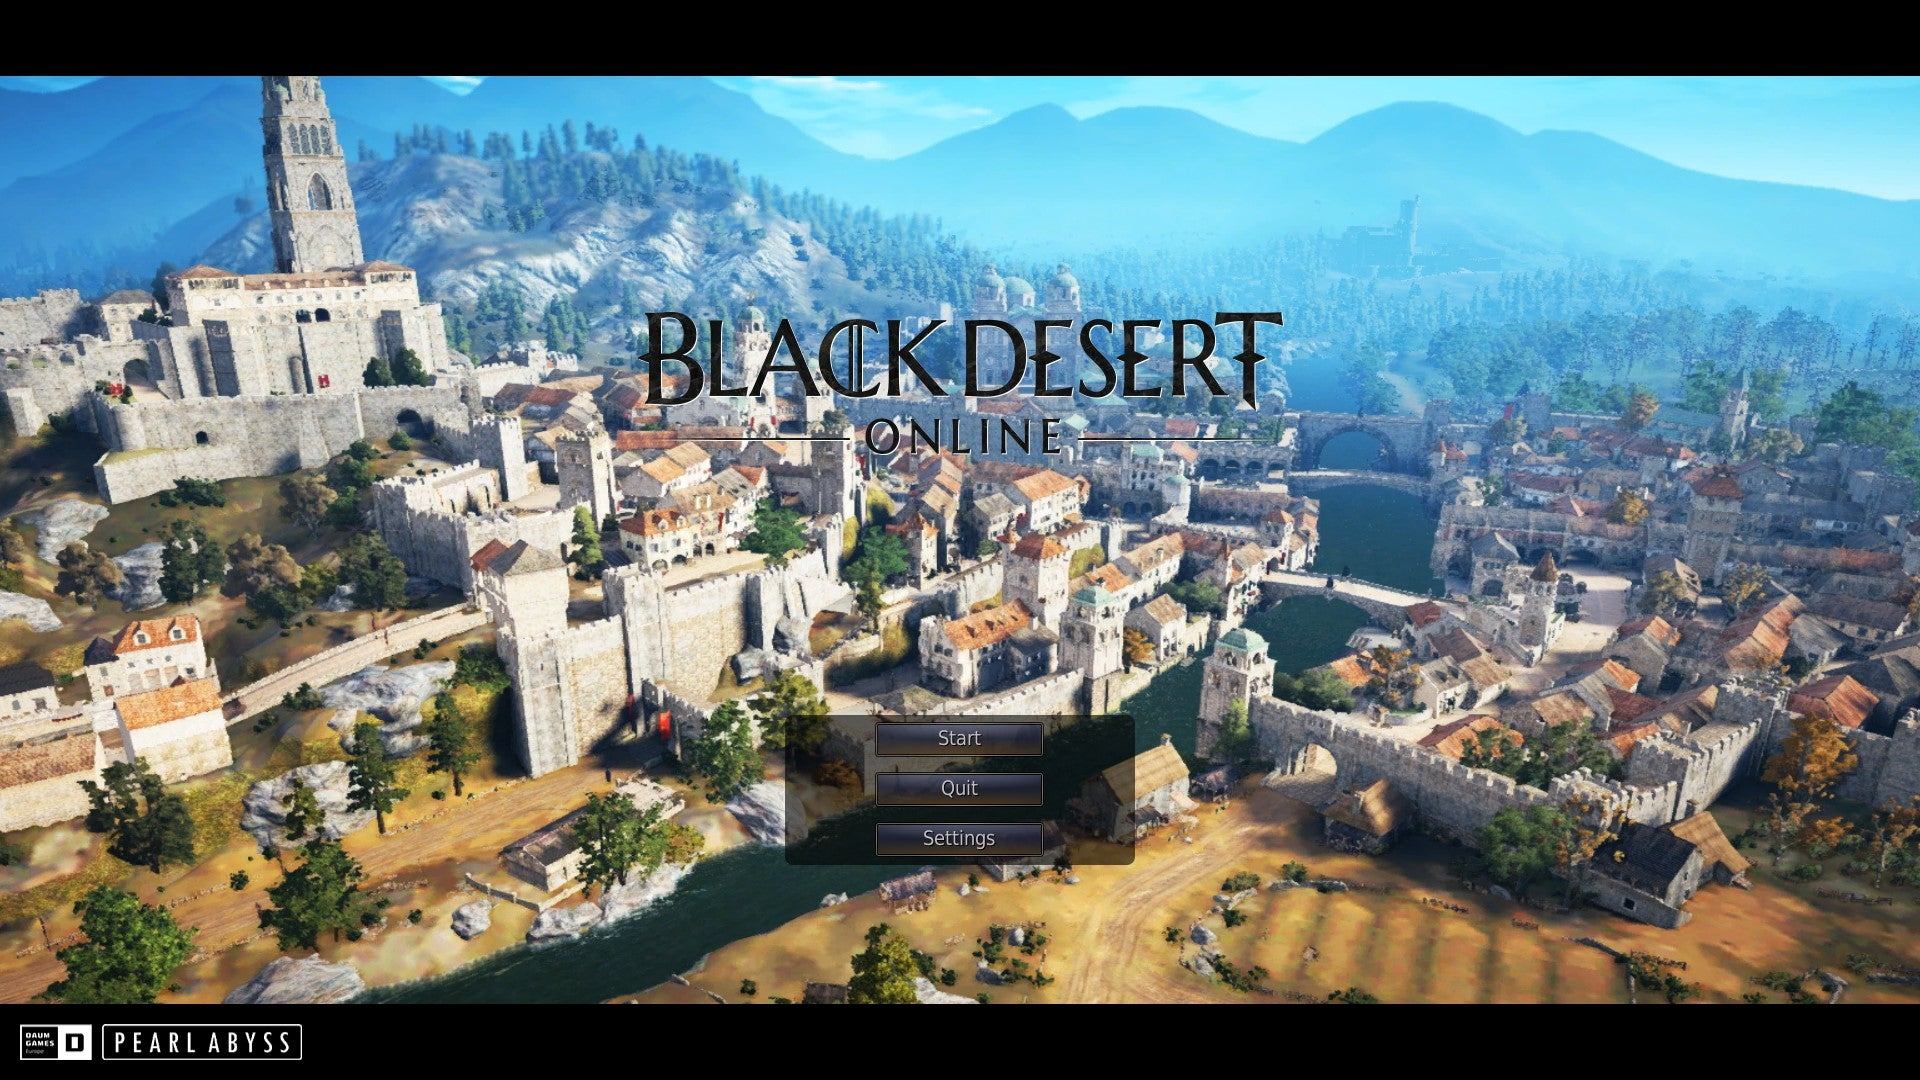 We Have Entered The Black Desert